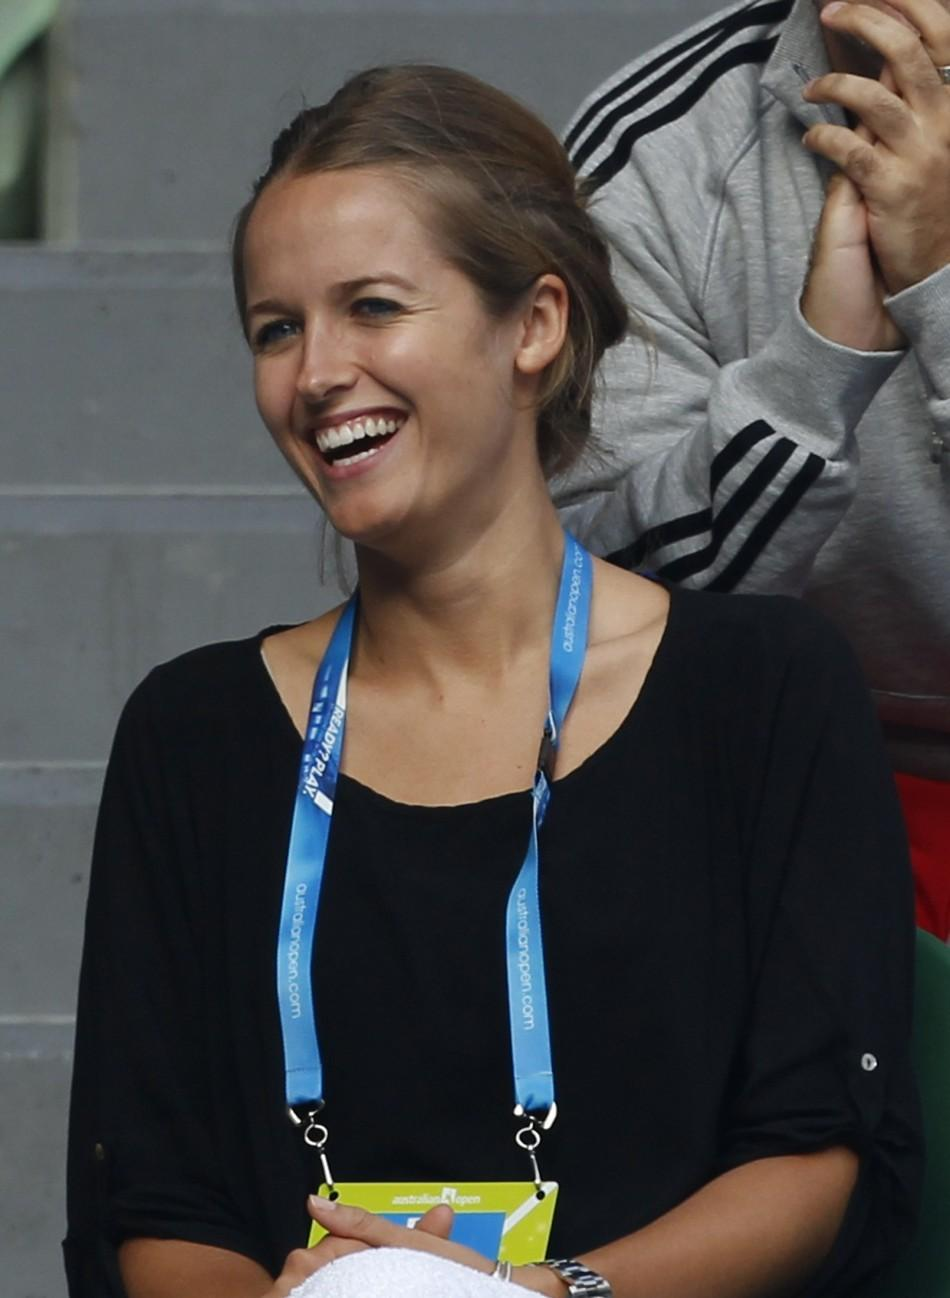 Kim Sears, girlfriend of Murray of Britain, watches his quarter-final match against Nishikori of Japan at the Australian Open tennis tournament in Melbourne